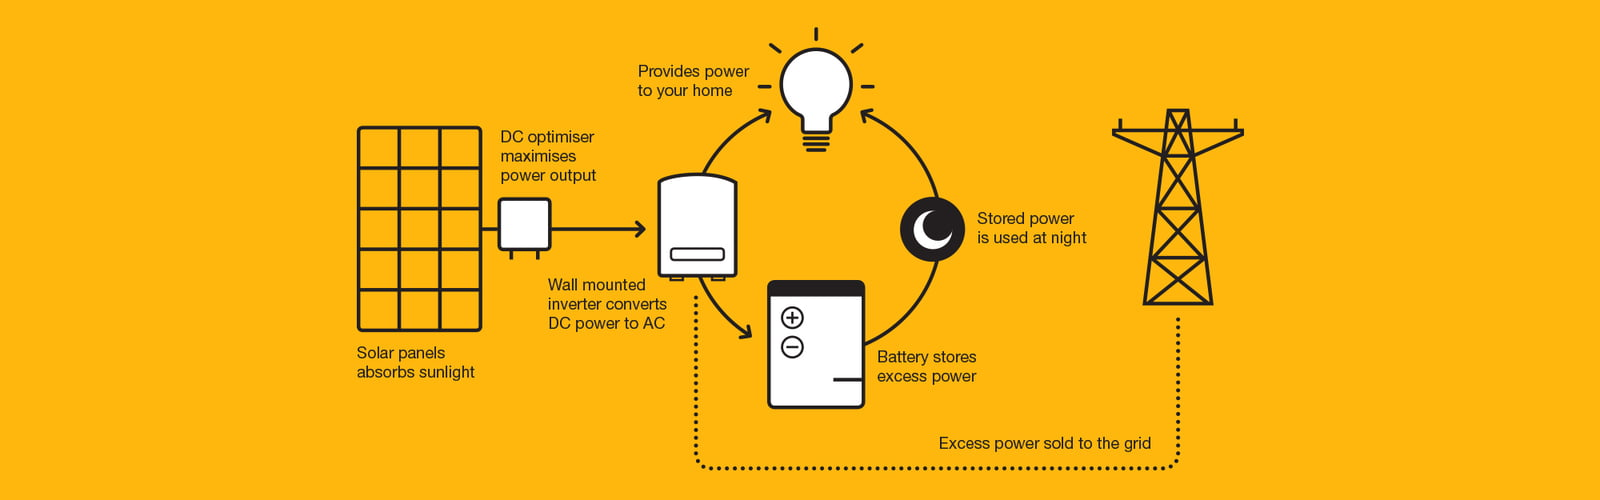 how solar power works diagram palm reading and meaning flowchart of